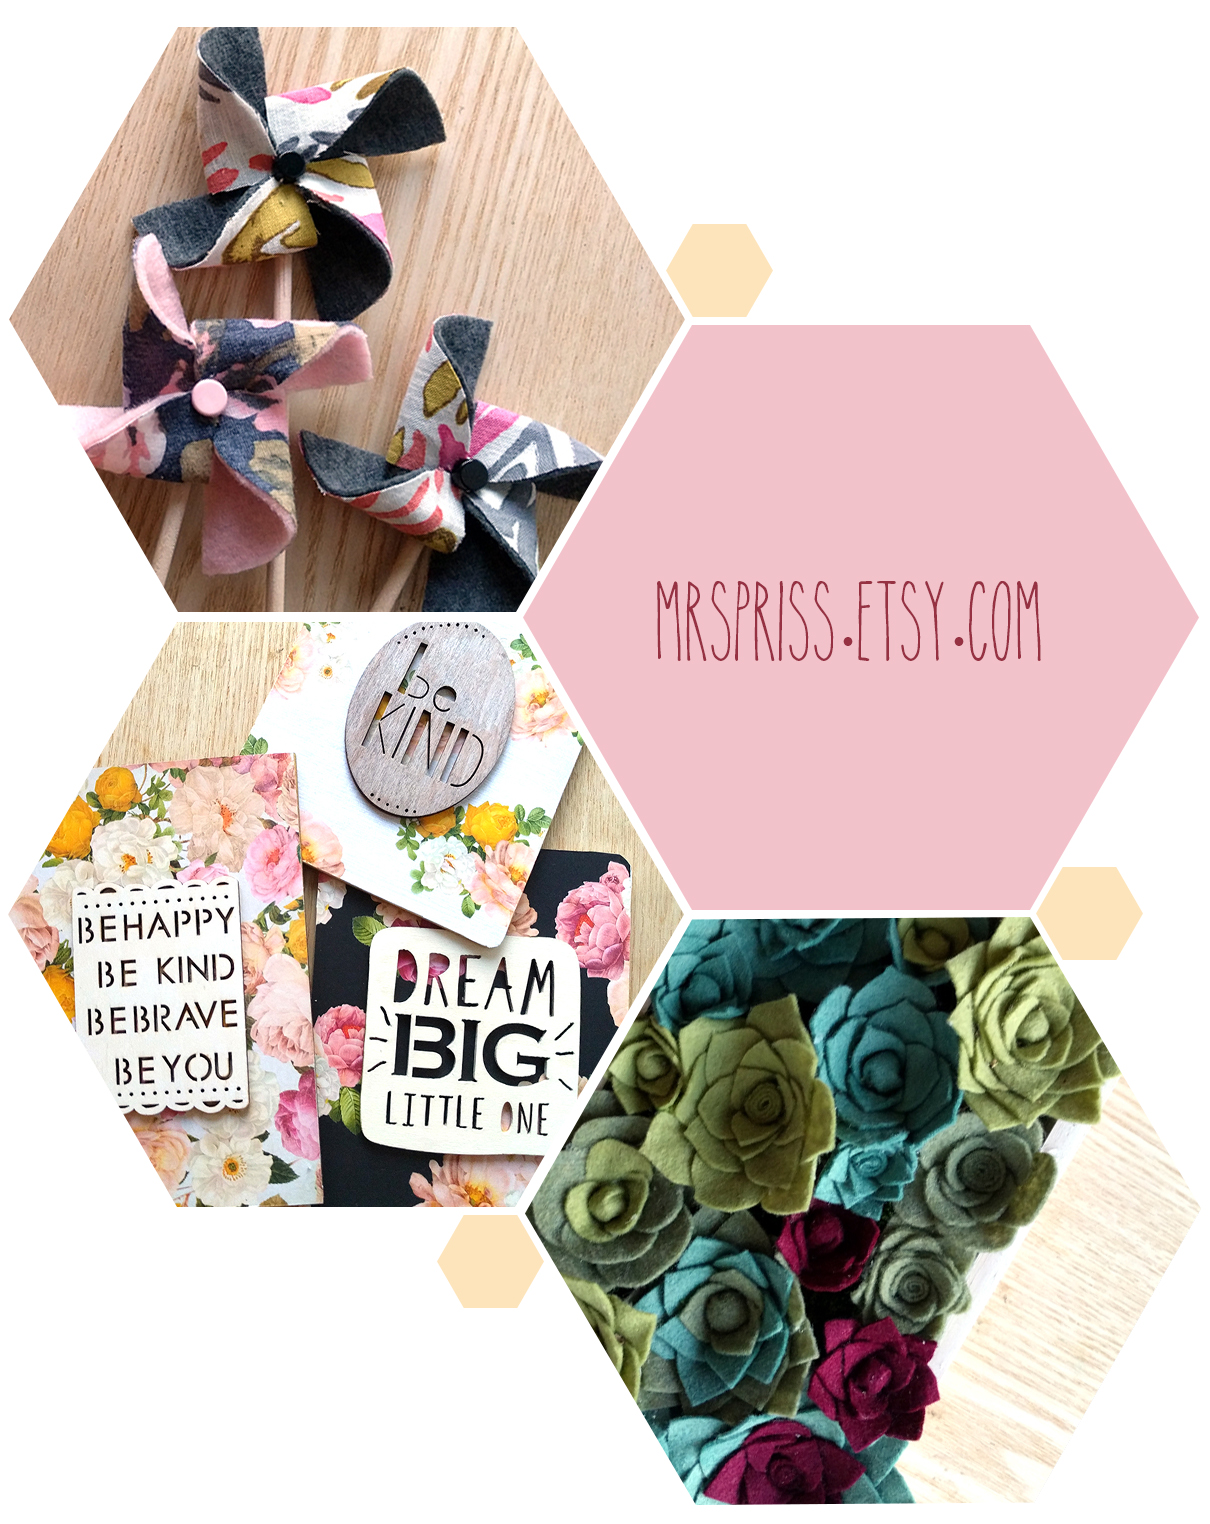 Mrs Priss Etsy Shop Reopening